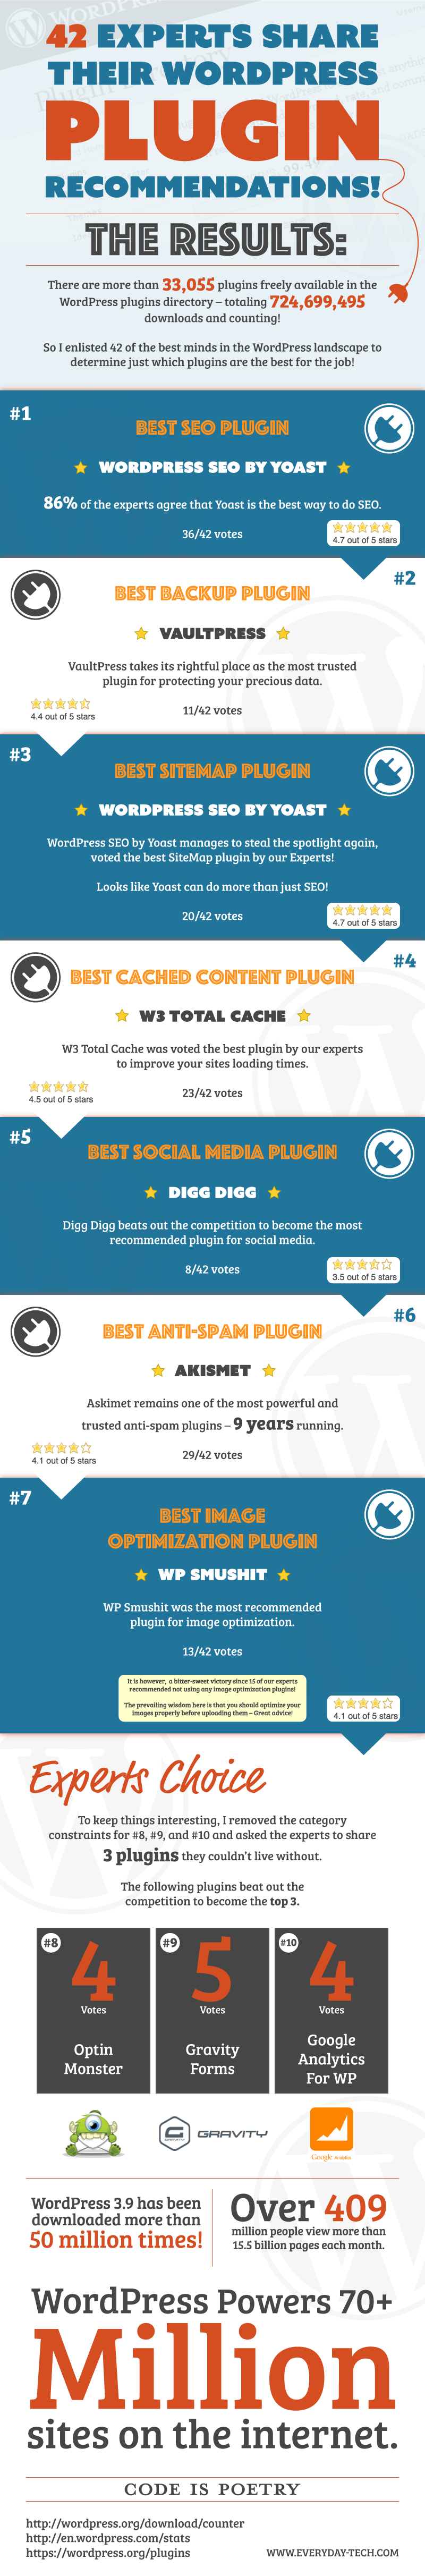 Top-10-Must-Have-WordPress-Plugins-Infographic